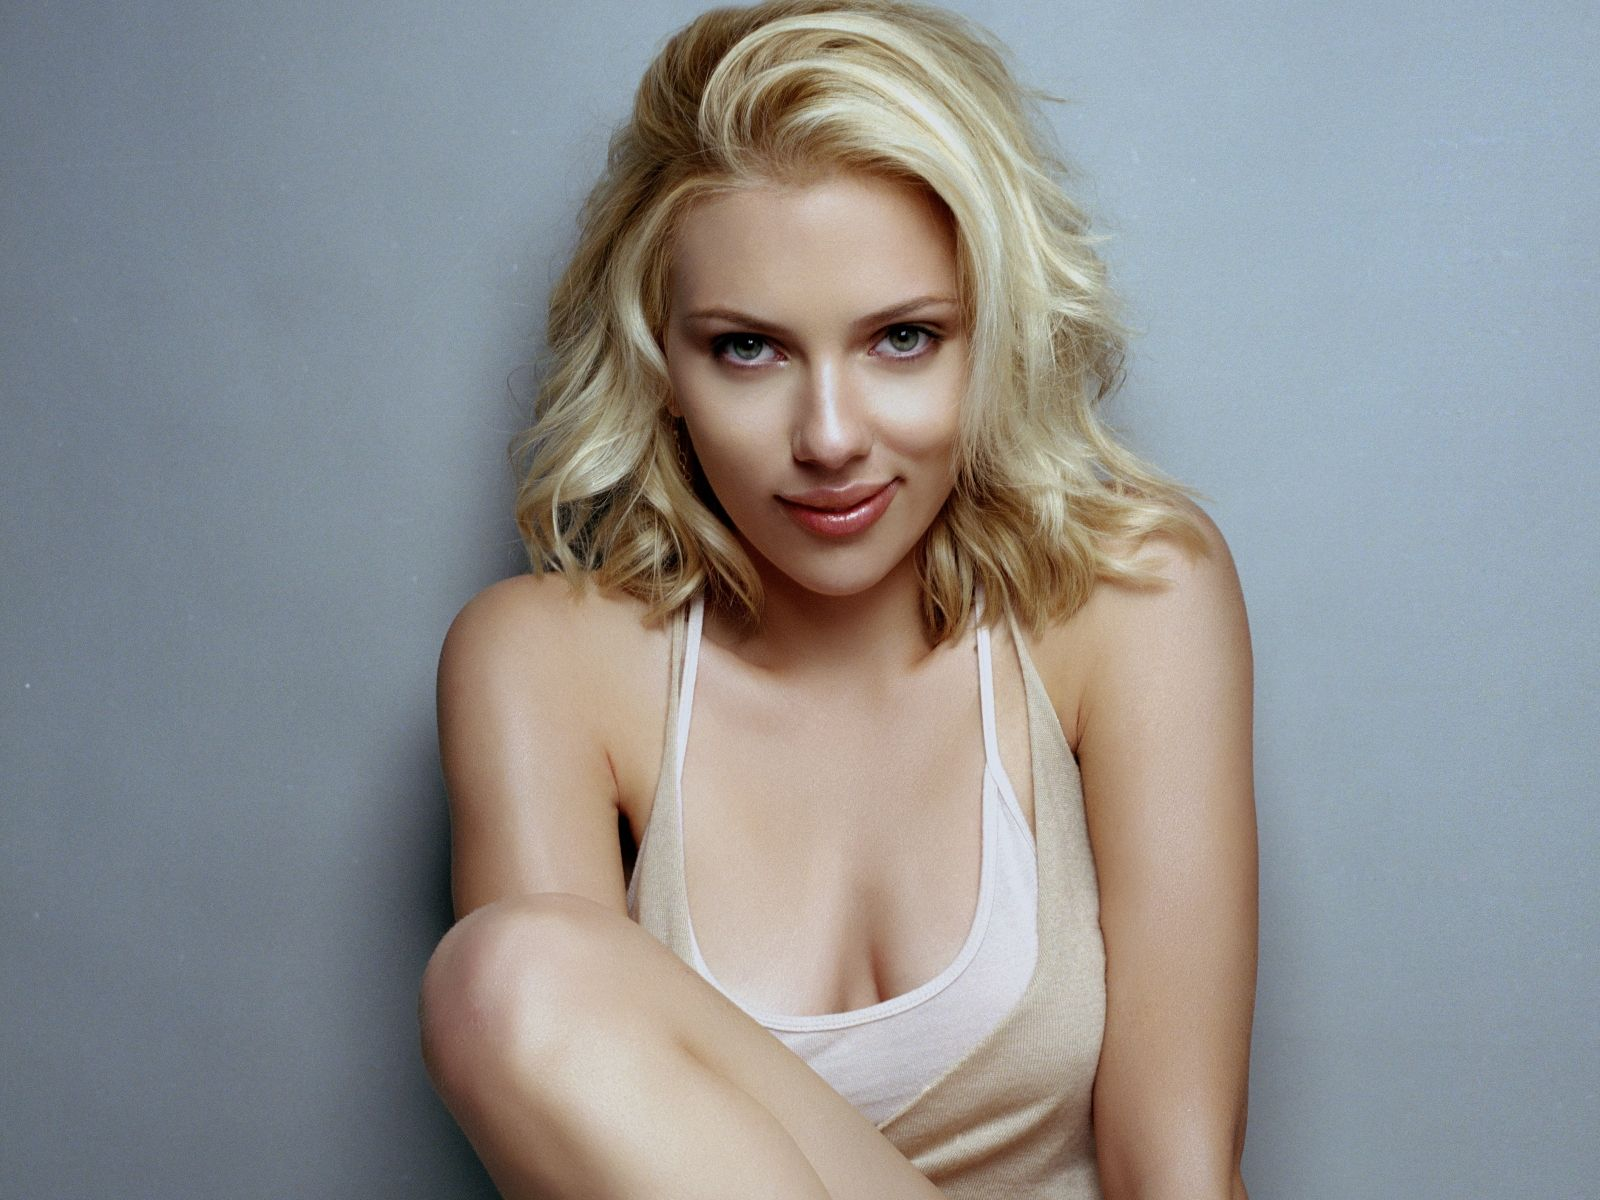 scarlett johansson hd wallpapers - Scarlett Johansson Wallpapers HD Nice Wallpapers